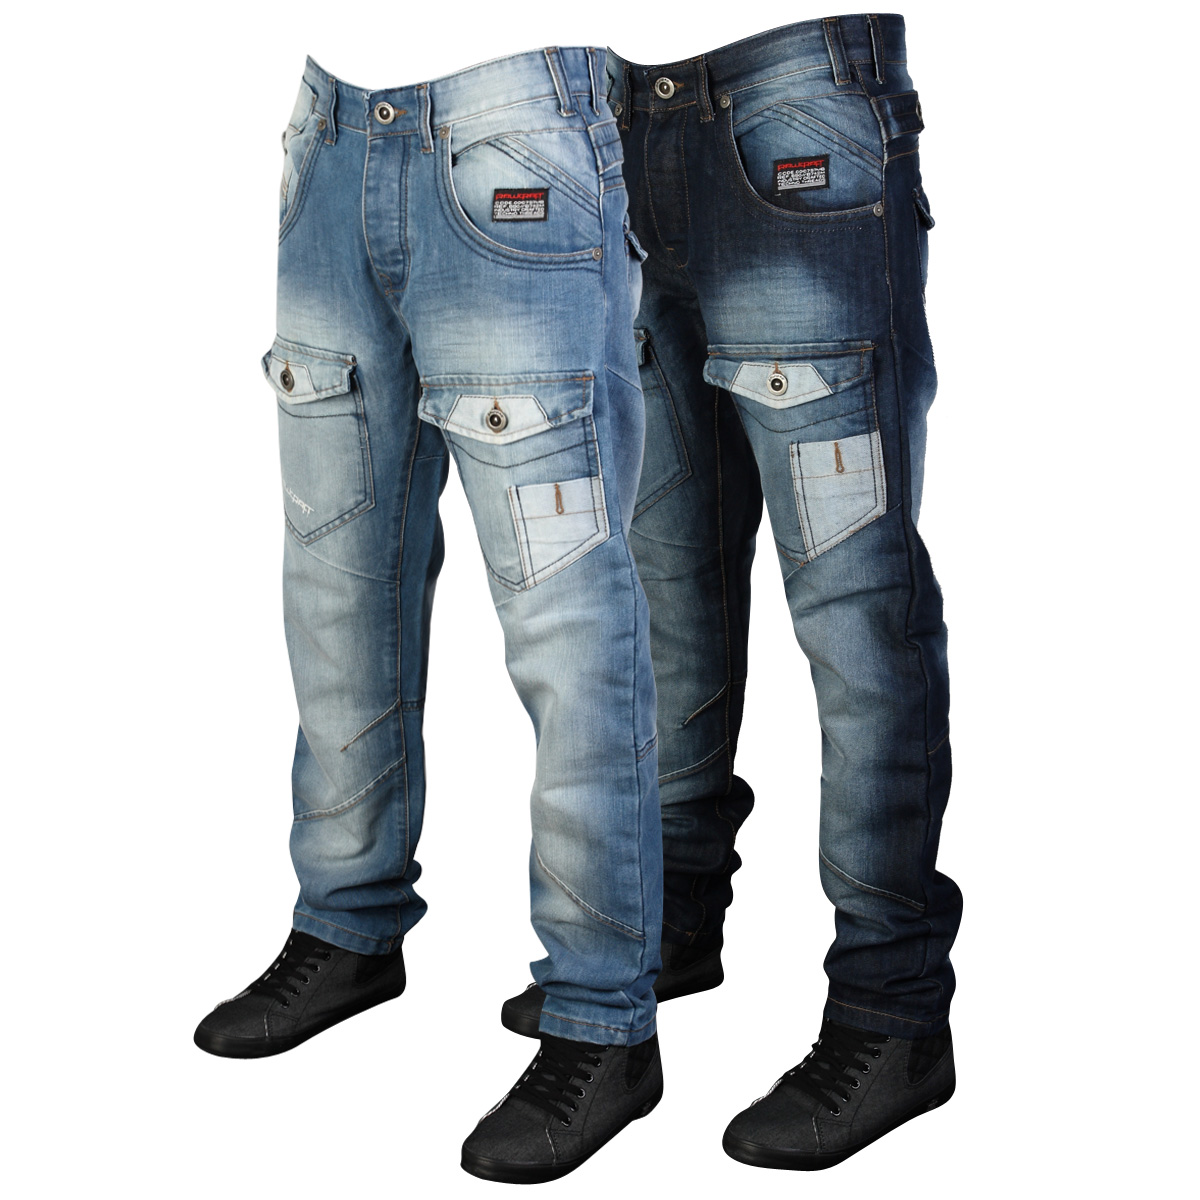 Be Careful In Buying Branded Jeans - Style Jeans